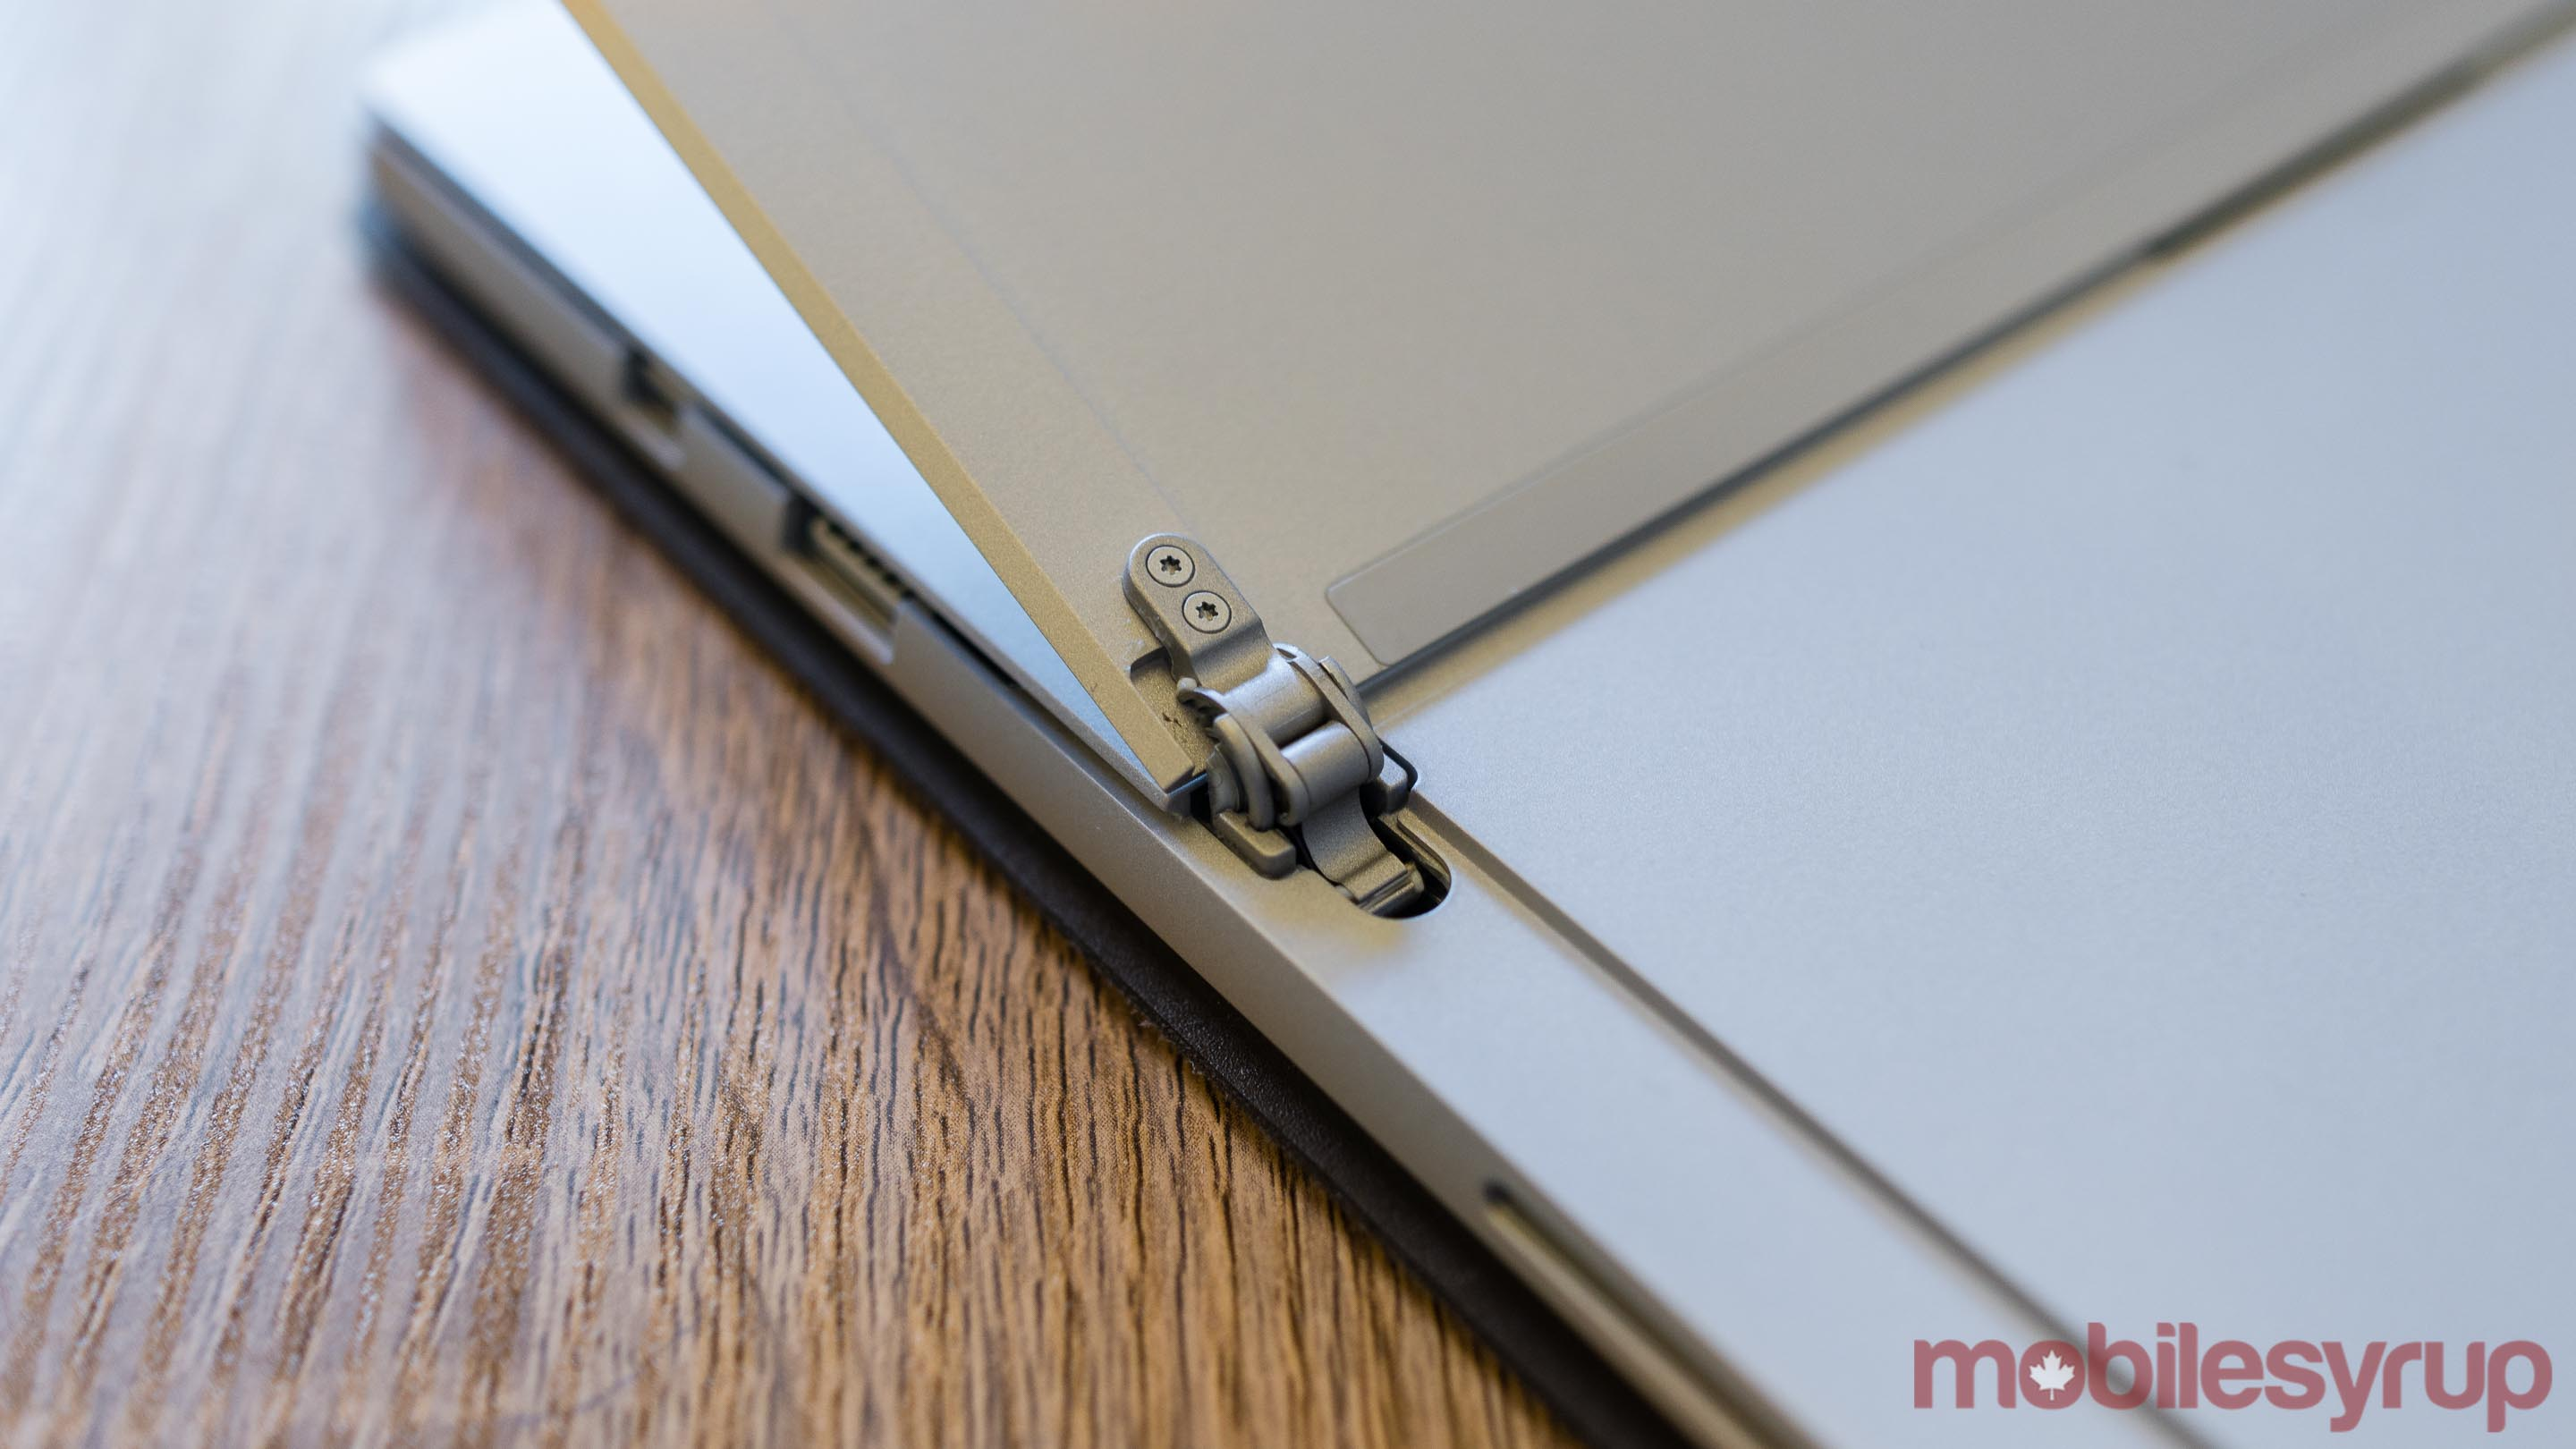 Microsoft Surface Pro hinge mechanism